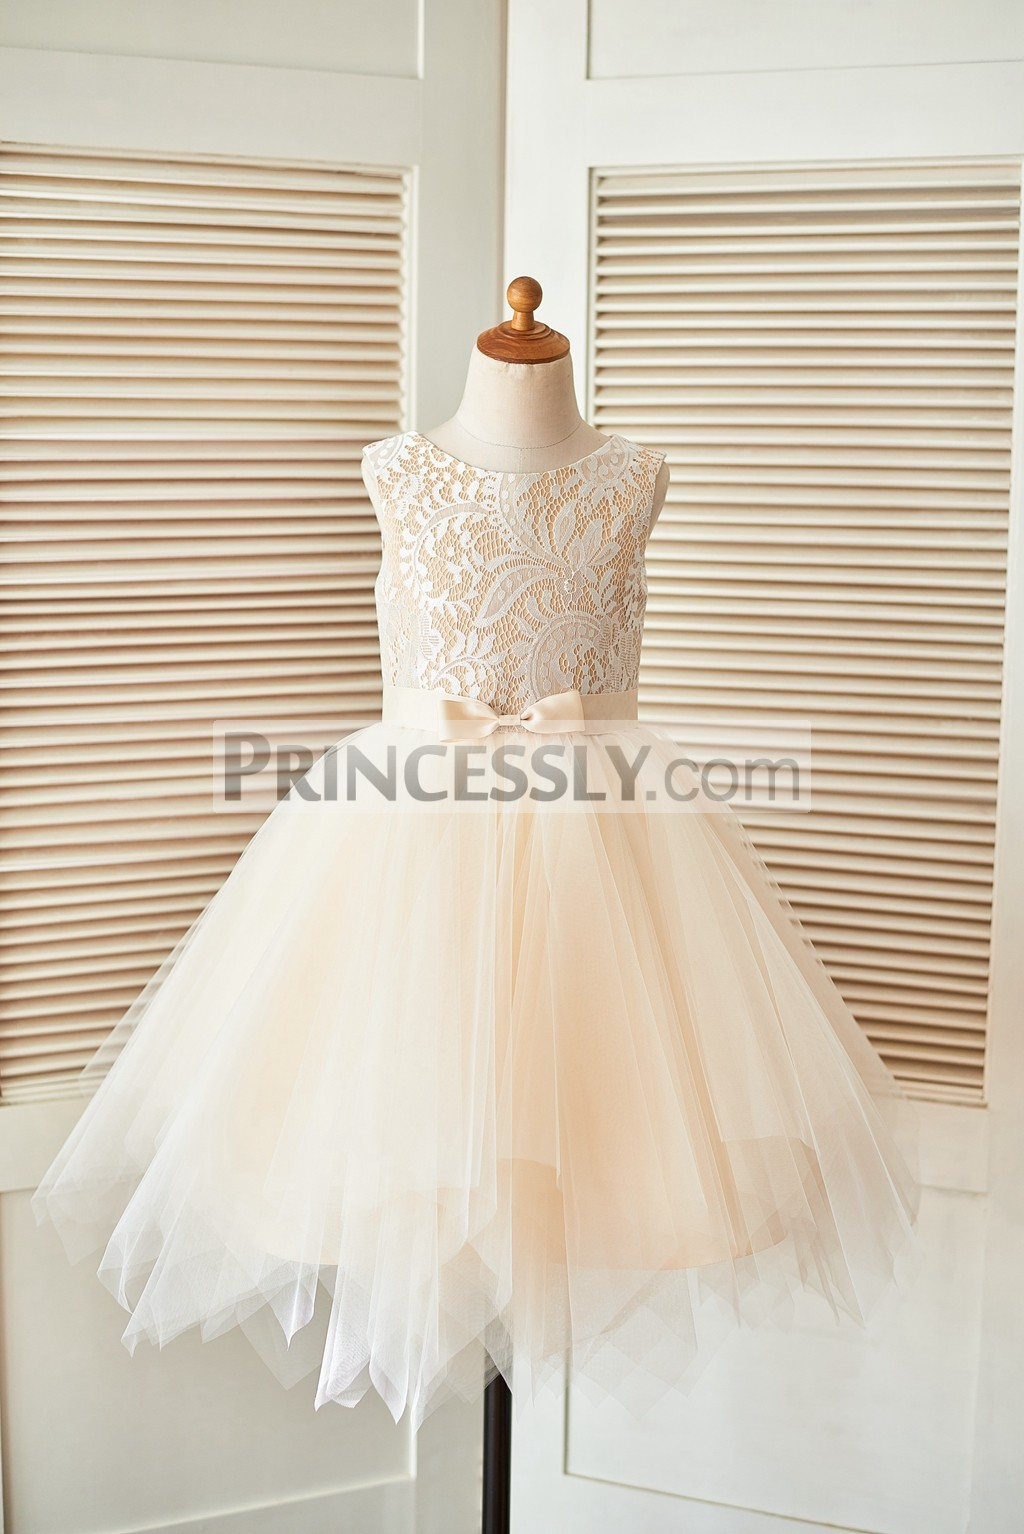 68c68c5d4b8 Ivory Lace Champagne Tulle Flower Girl Dress with Uneven Hem and ...